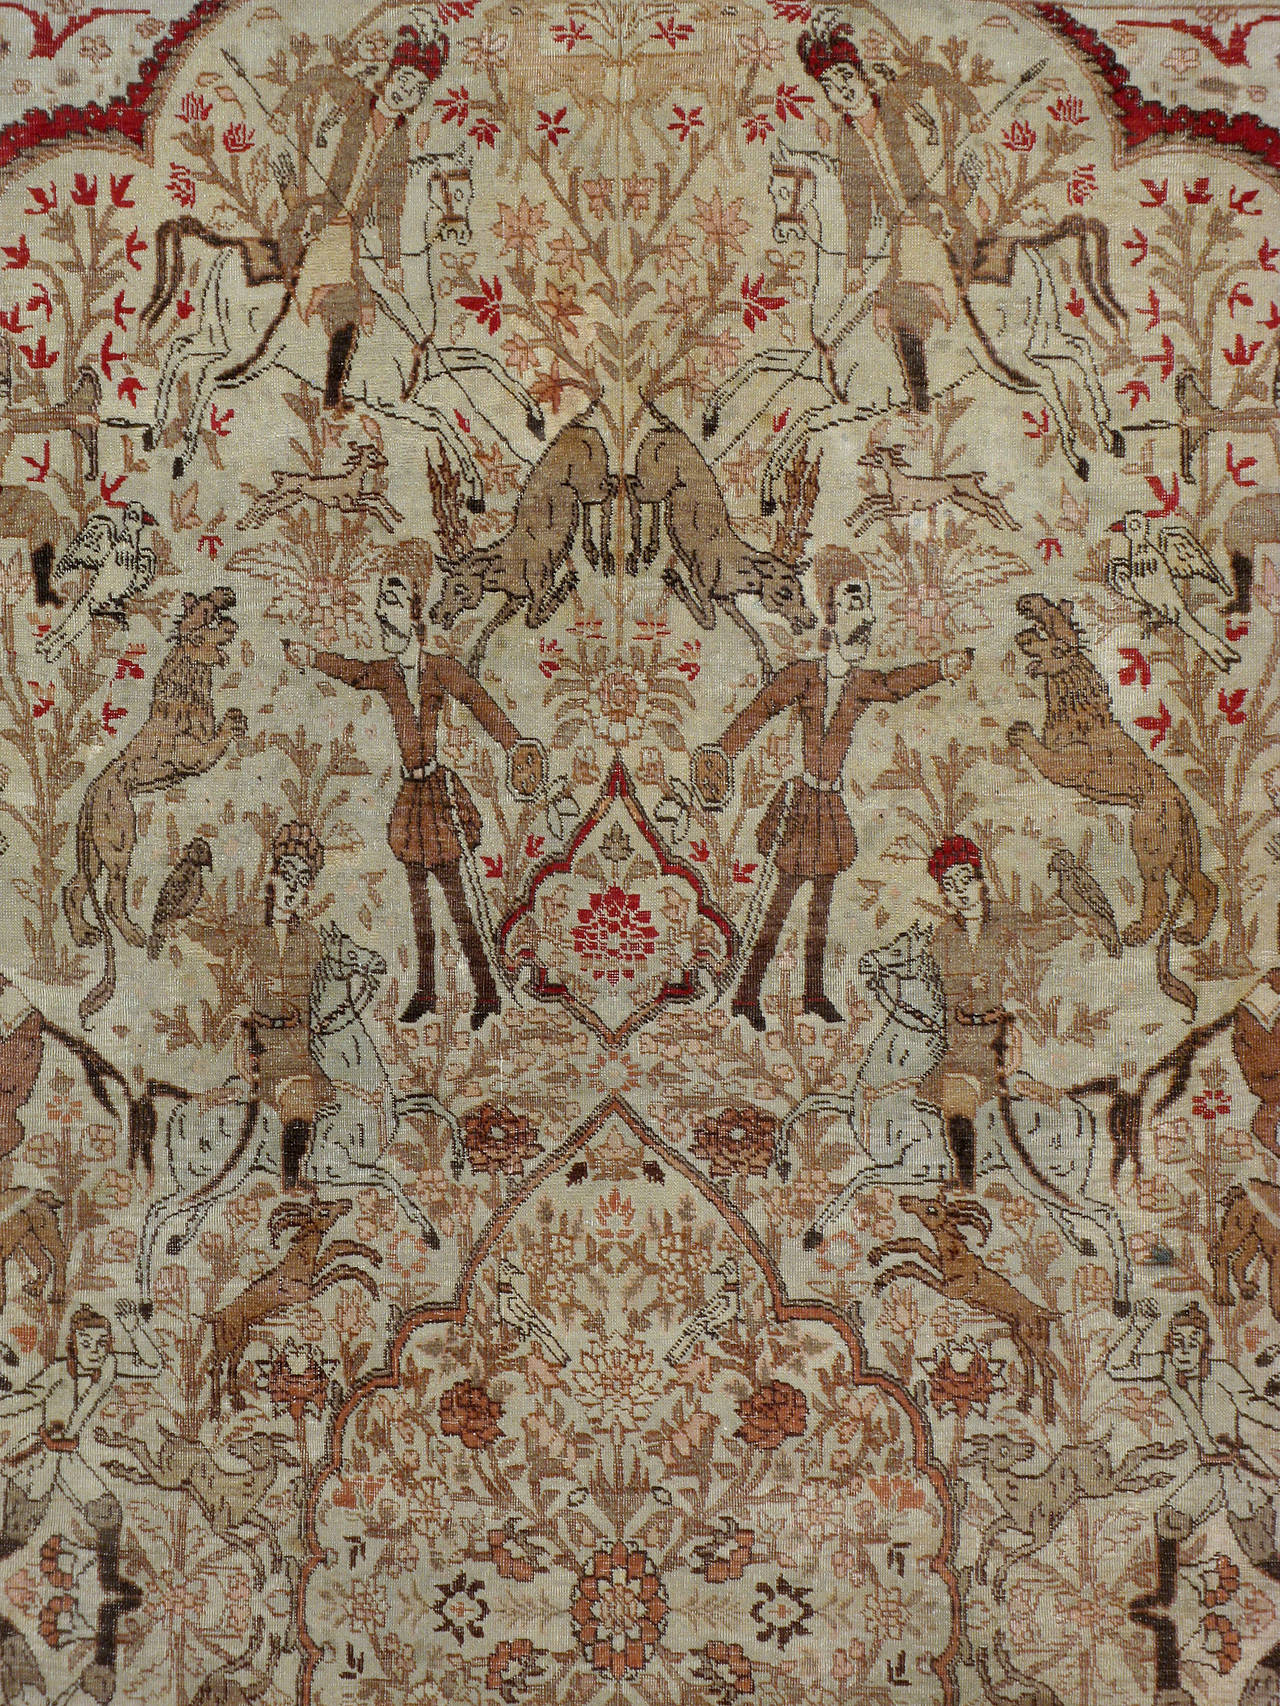 An antique Persian Tabriz carpet from the turn of the 20th century depicting a pictorial design of a Persian hunting ground.   Antique and vintage animal rugs are desired for both its decorative appeal and character because of the great